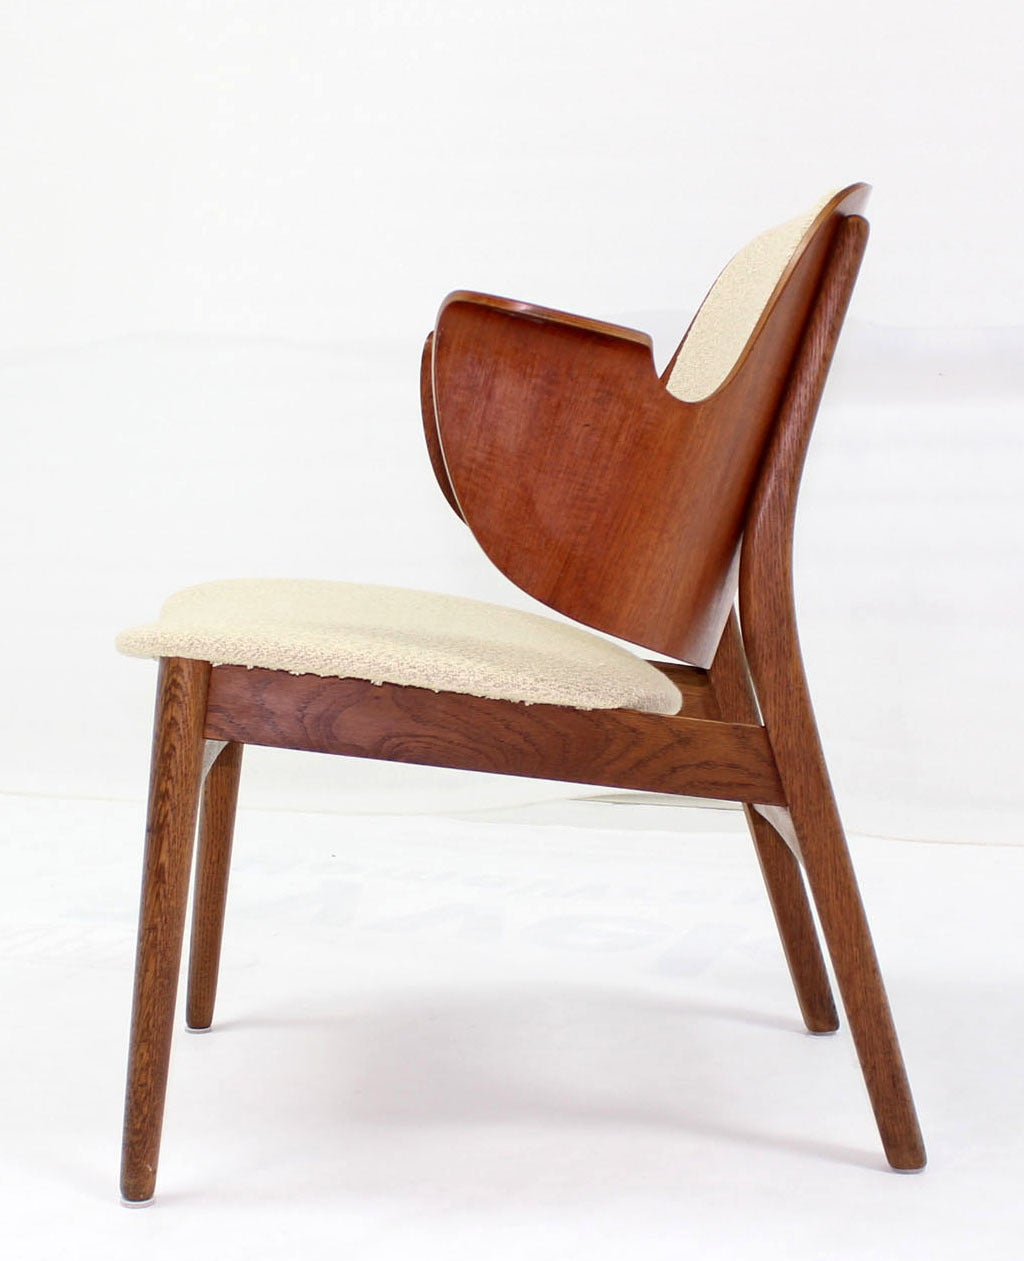 Unusual mid-century modern molded plywood desk chair possibly after H. Wegner.